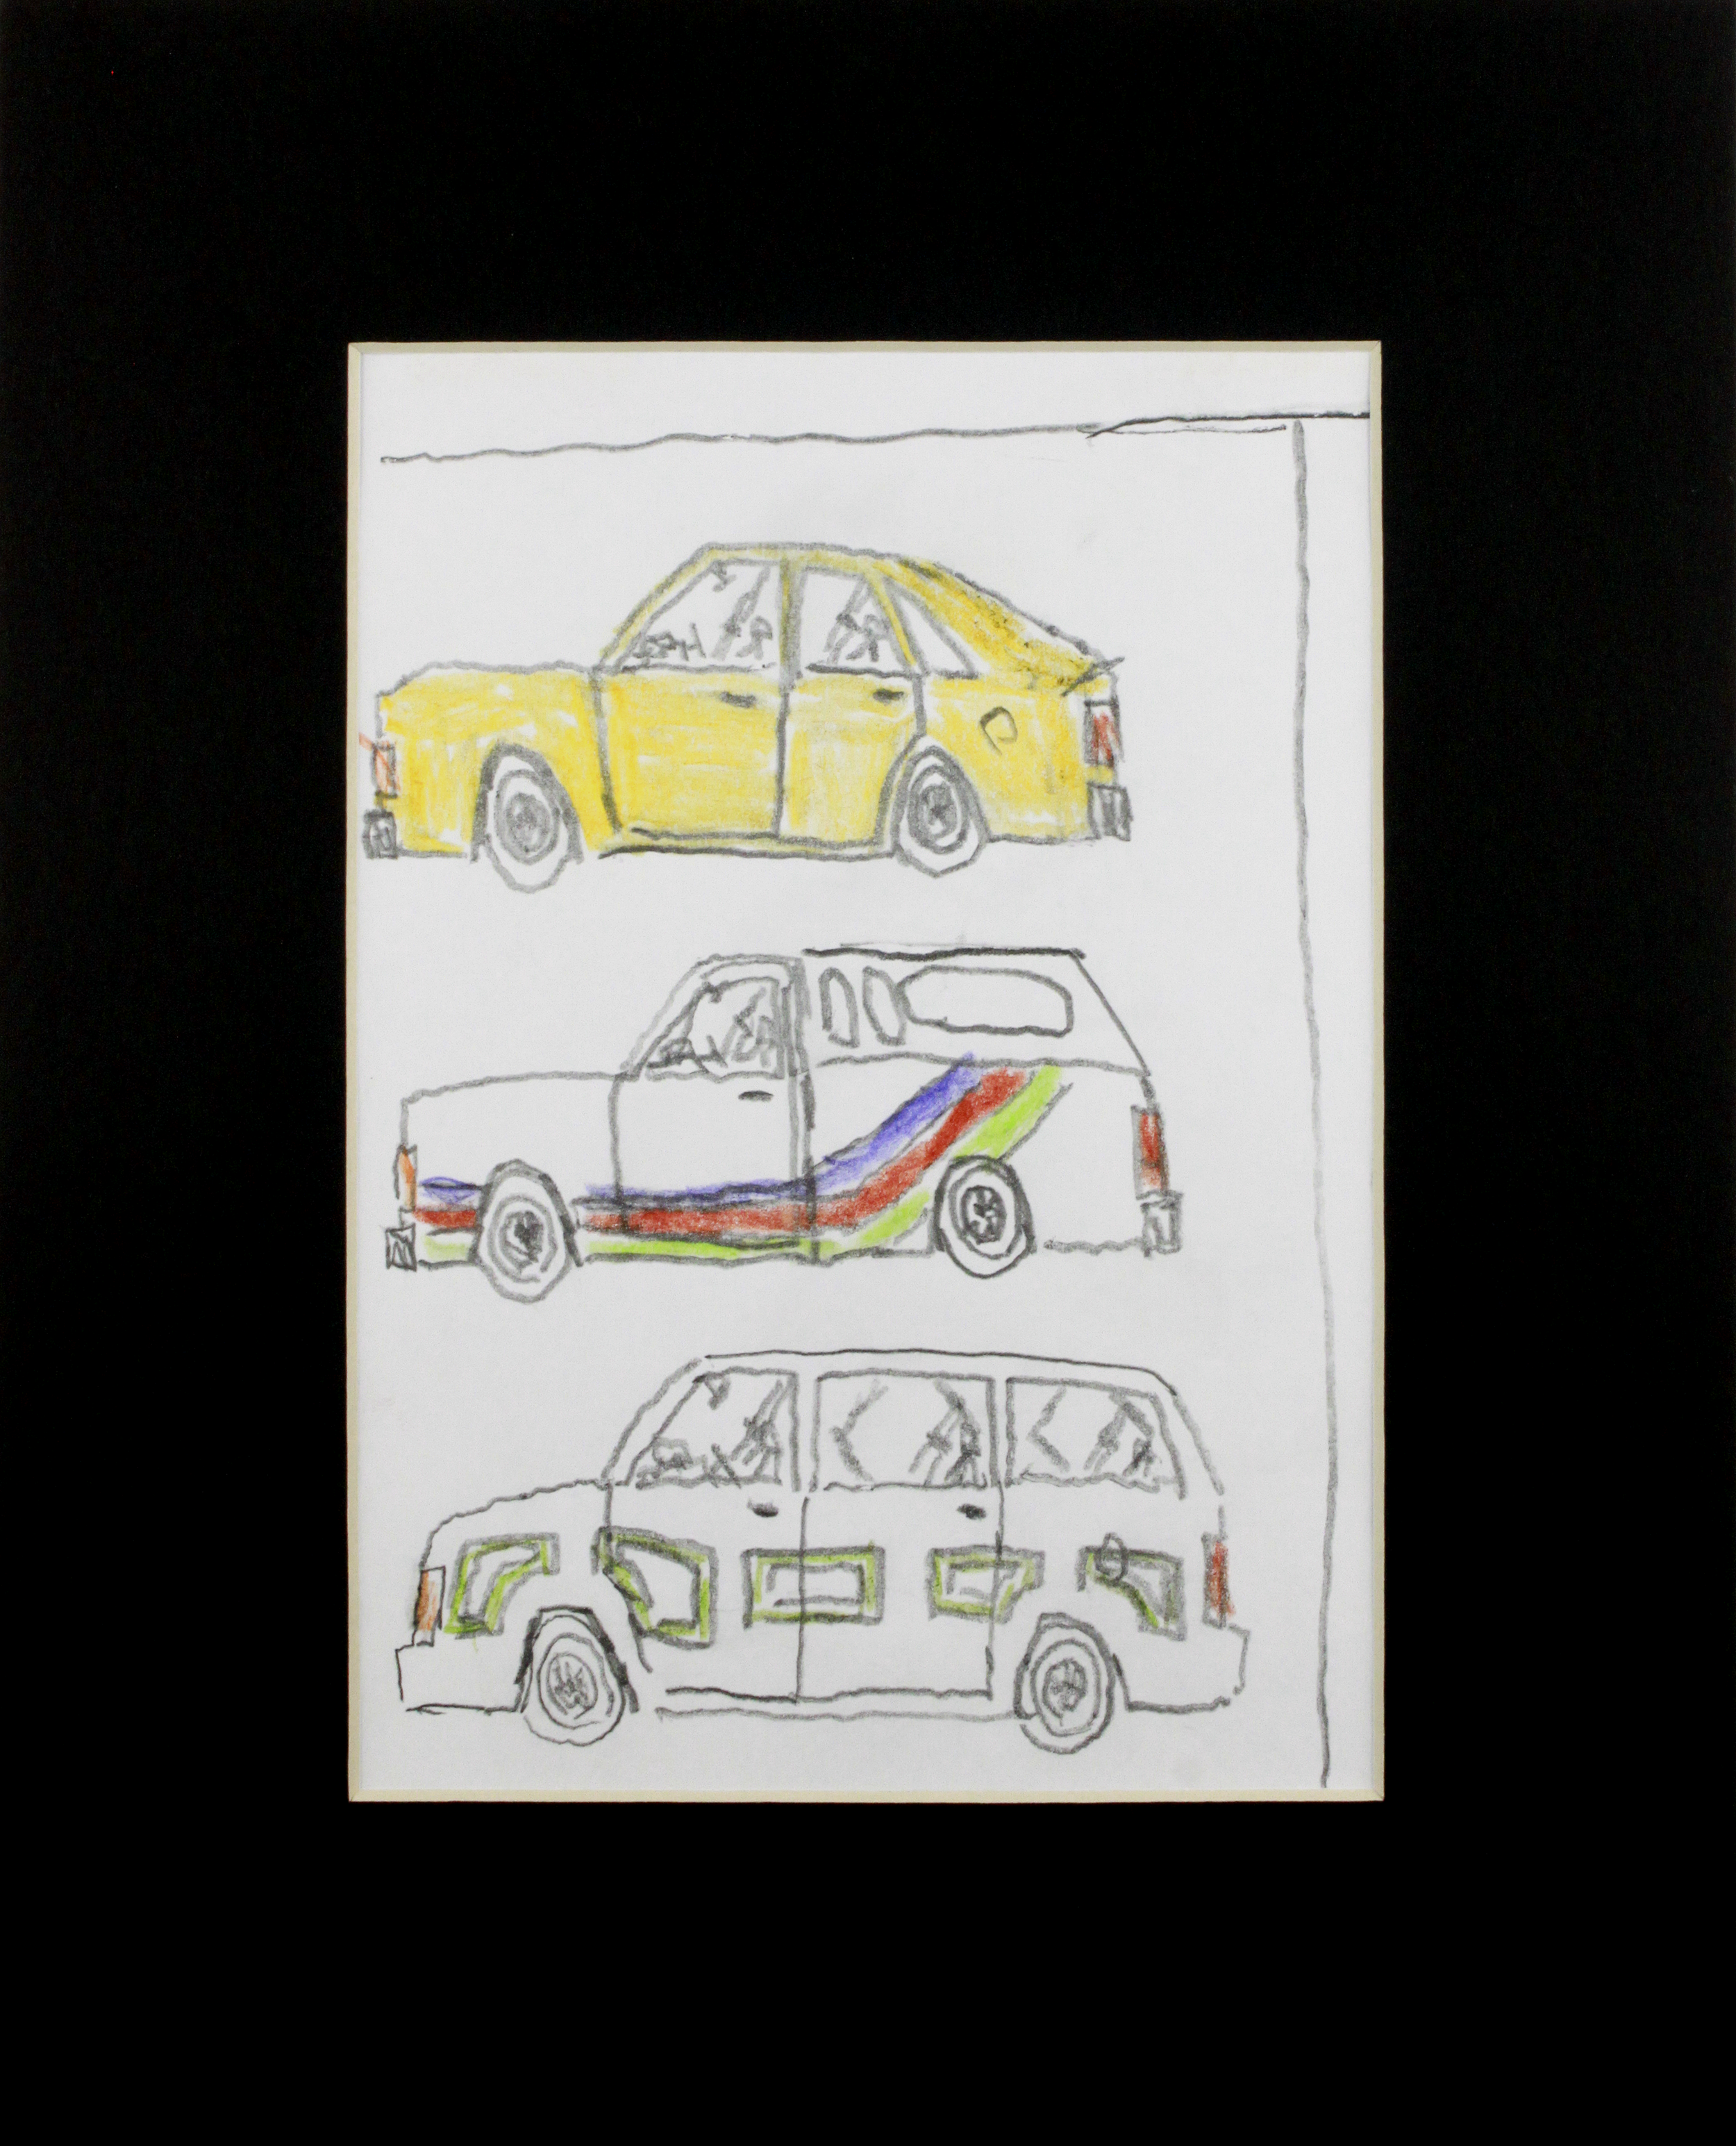 "Car Truck Van.  Graphite and Colored Pencil on paper. 8"" x 10"" matted."